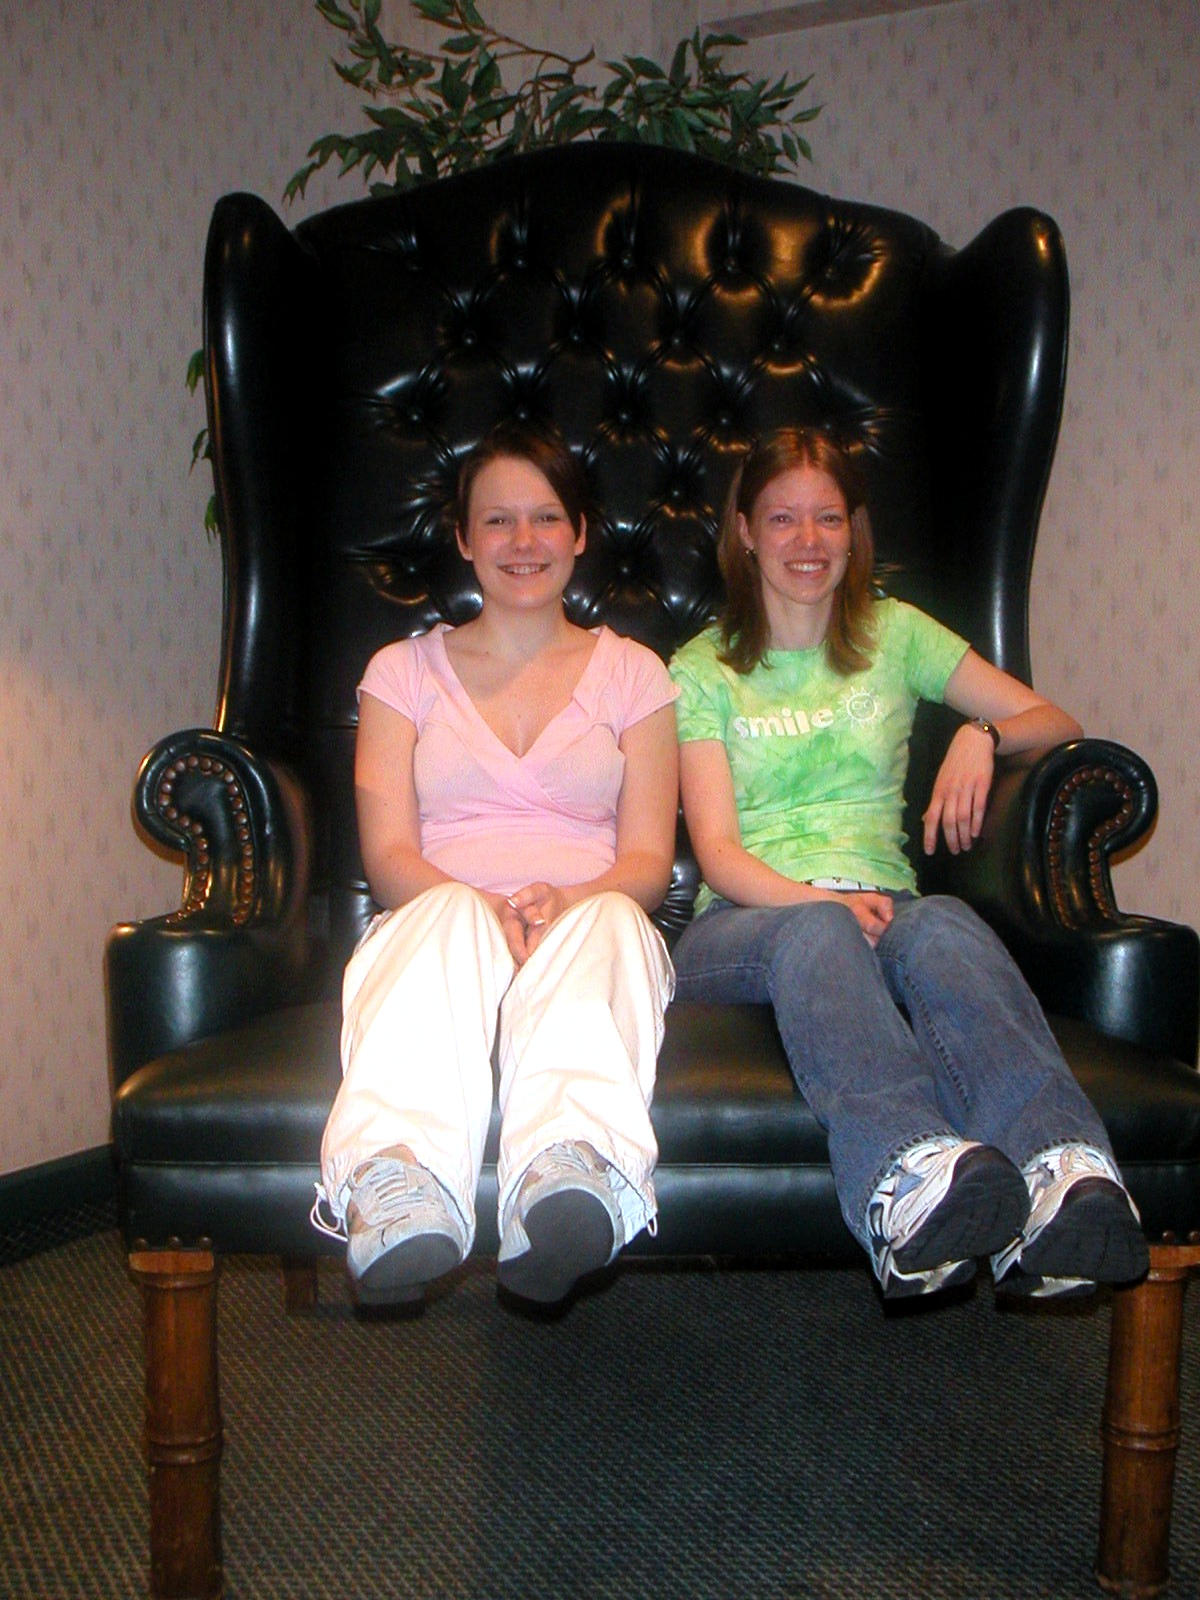 https://www.andreabertramstudio.com/images/Crystal_Chelsea_in_the_Big_Chair-Provincials.JPG